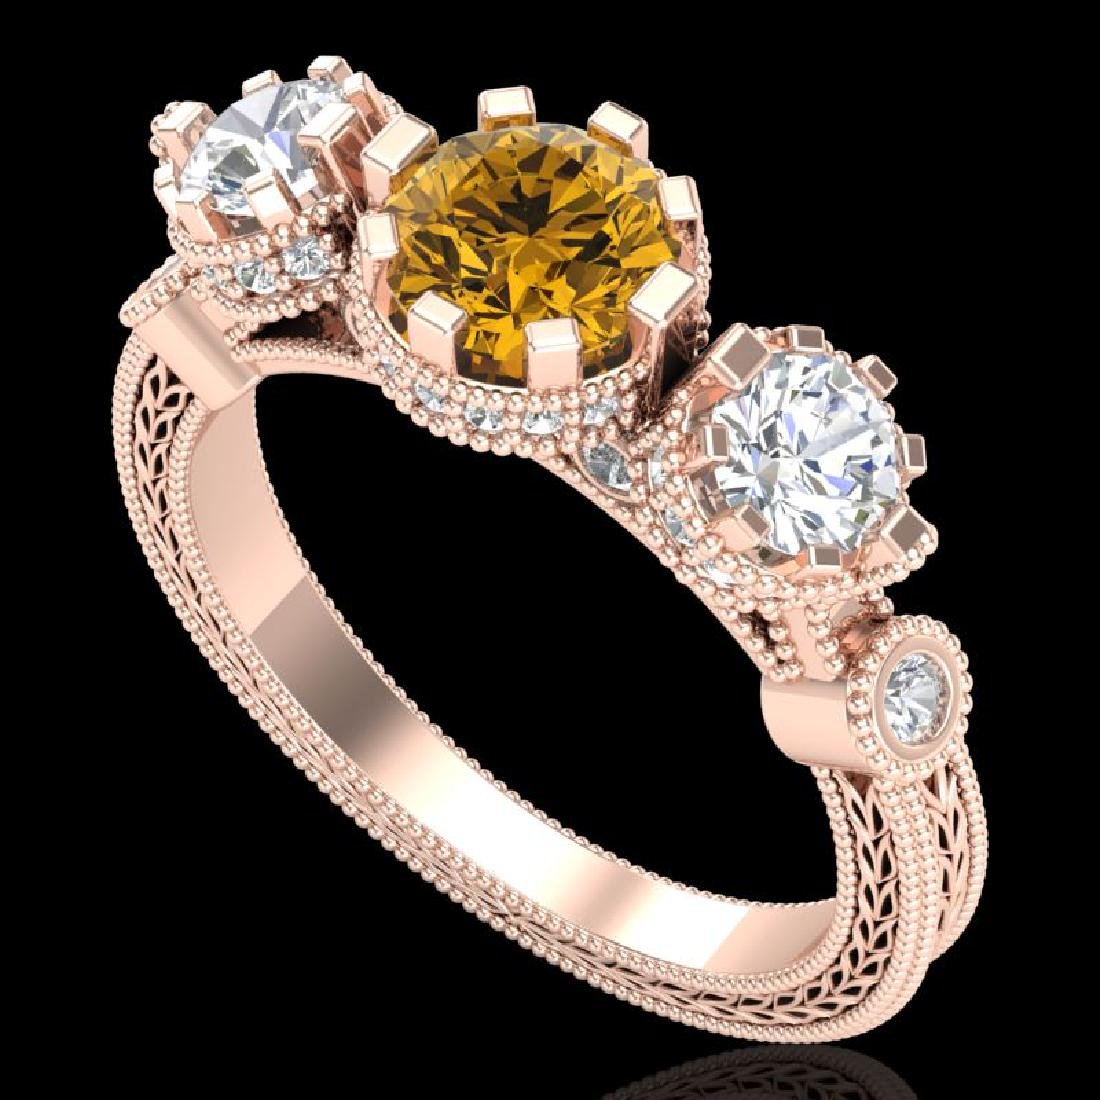 1.75 CTW Intense Fancy Yellow Diamond Art Deco 3 Stone